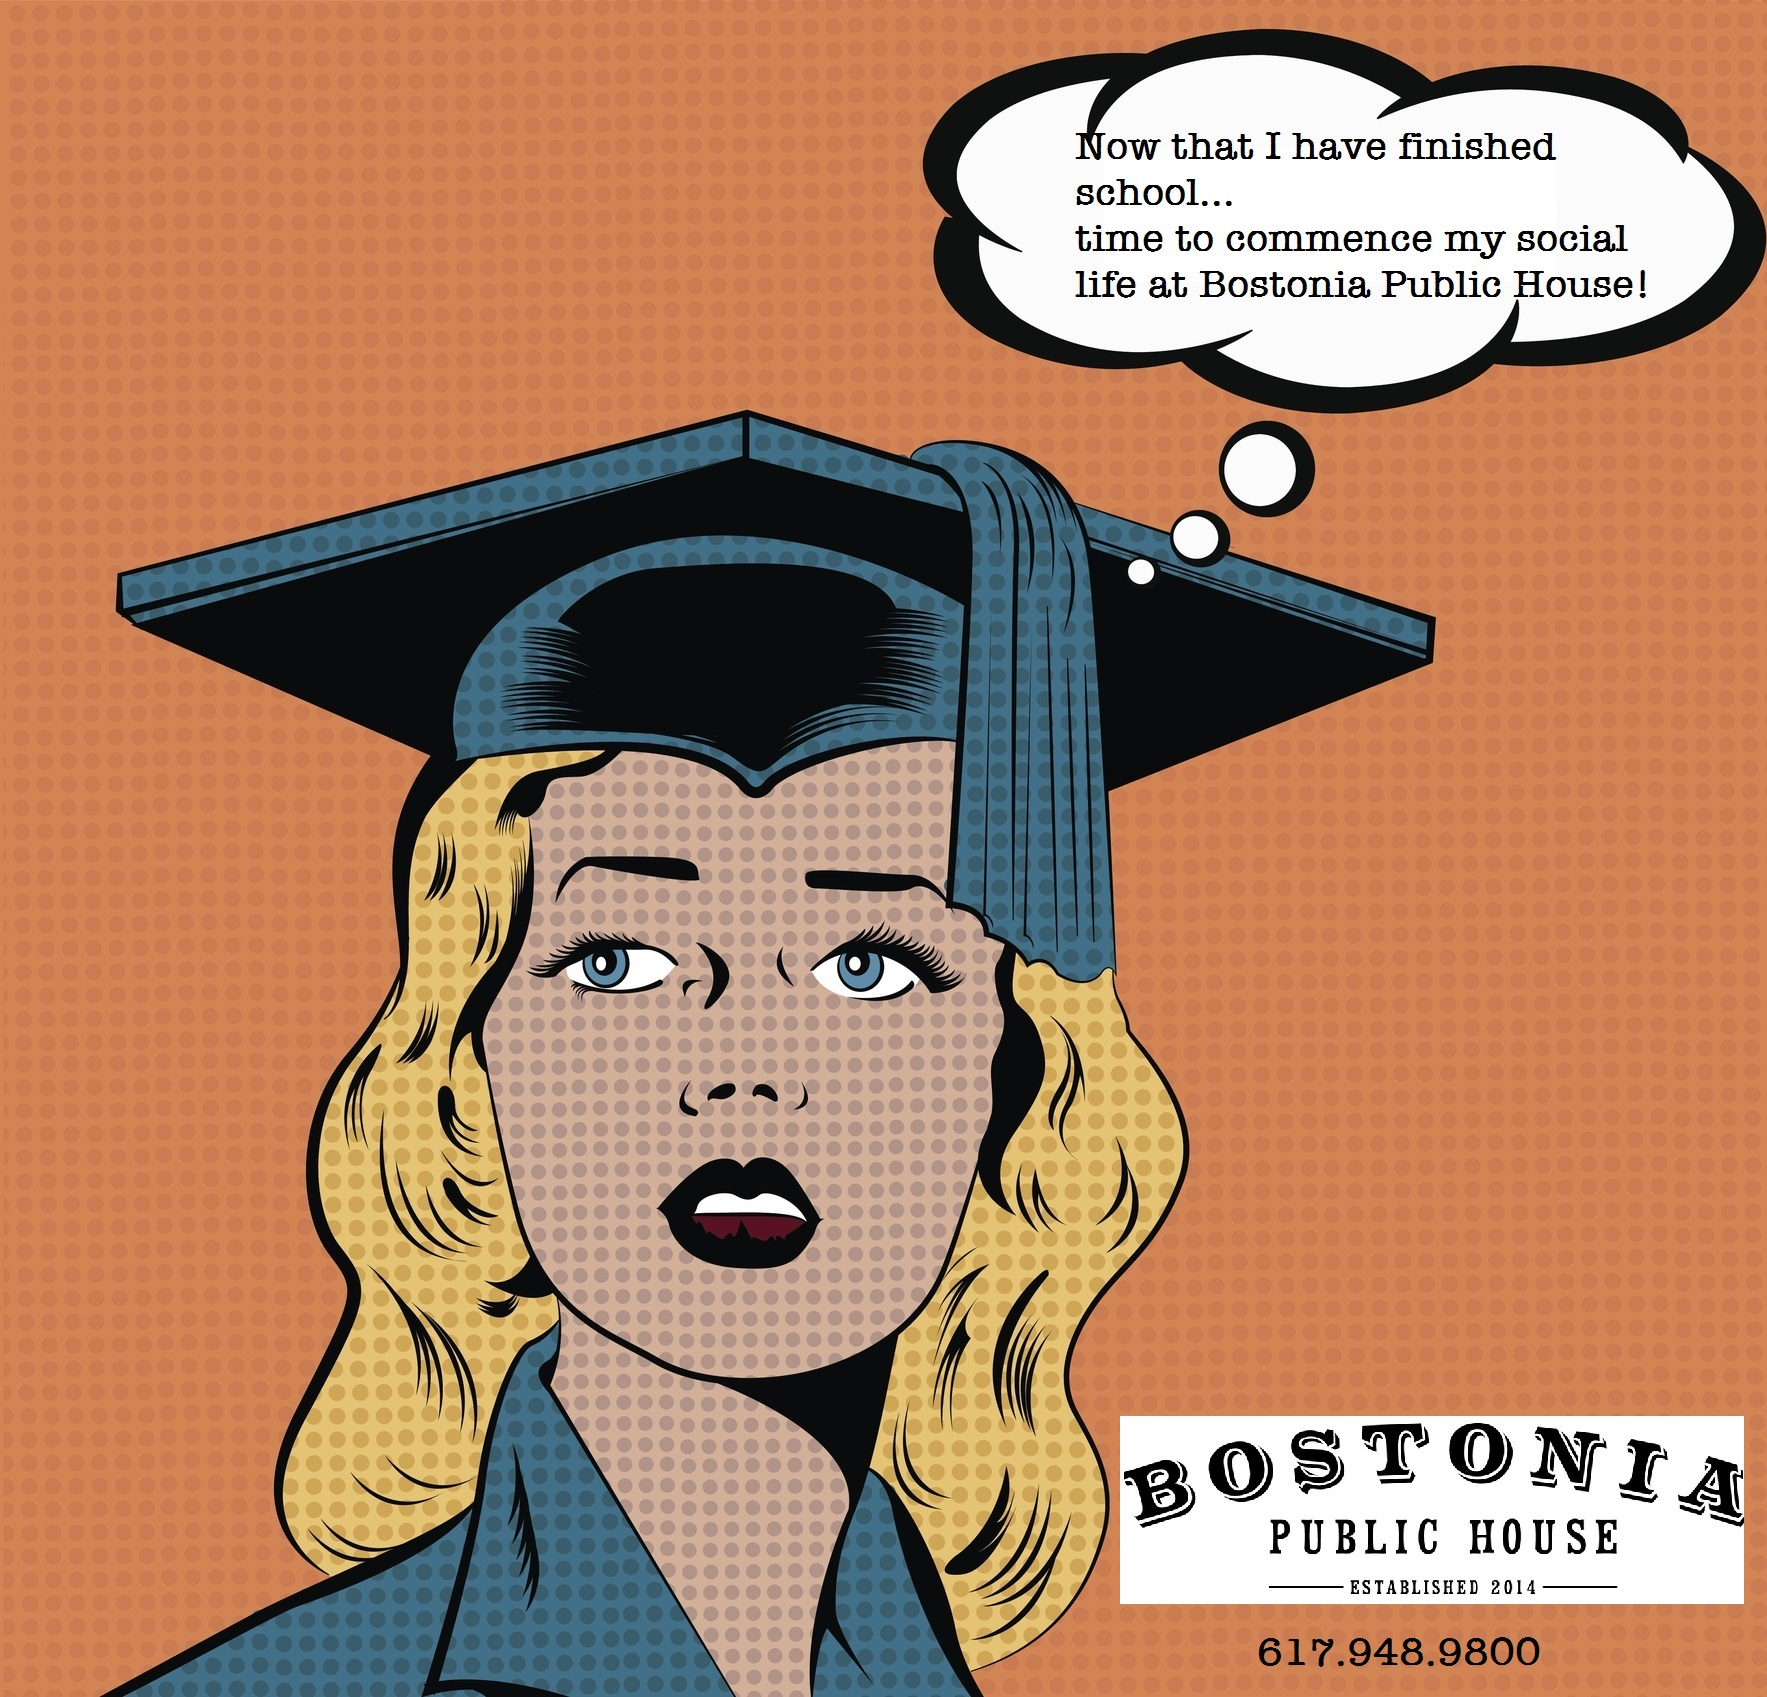 Illustration of a young woman in graduation gown - Bostonia Public House